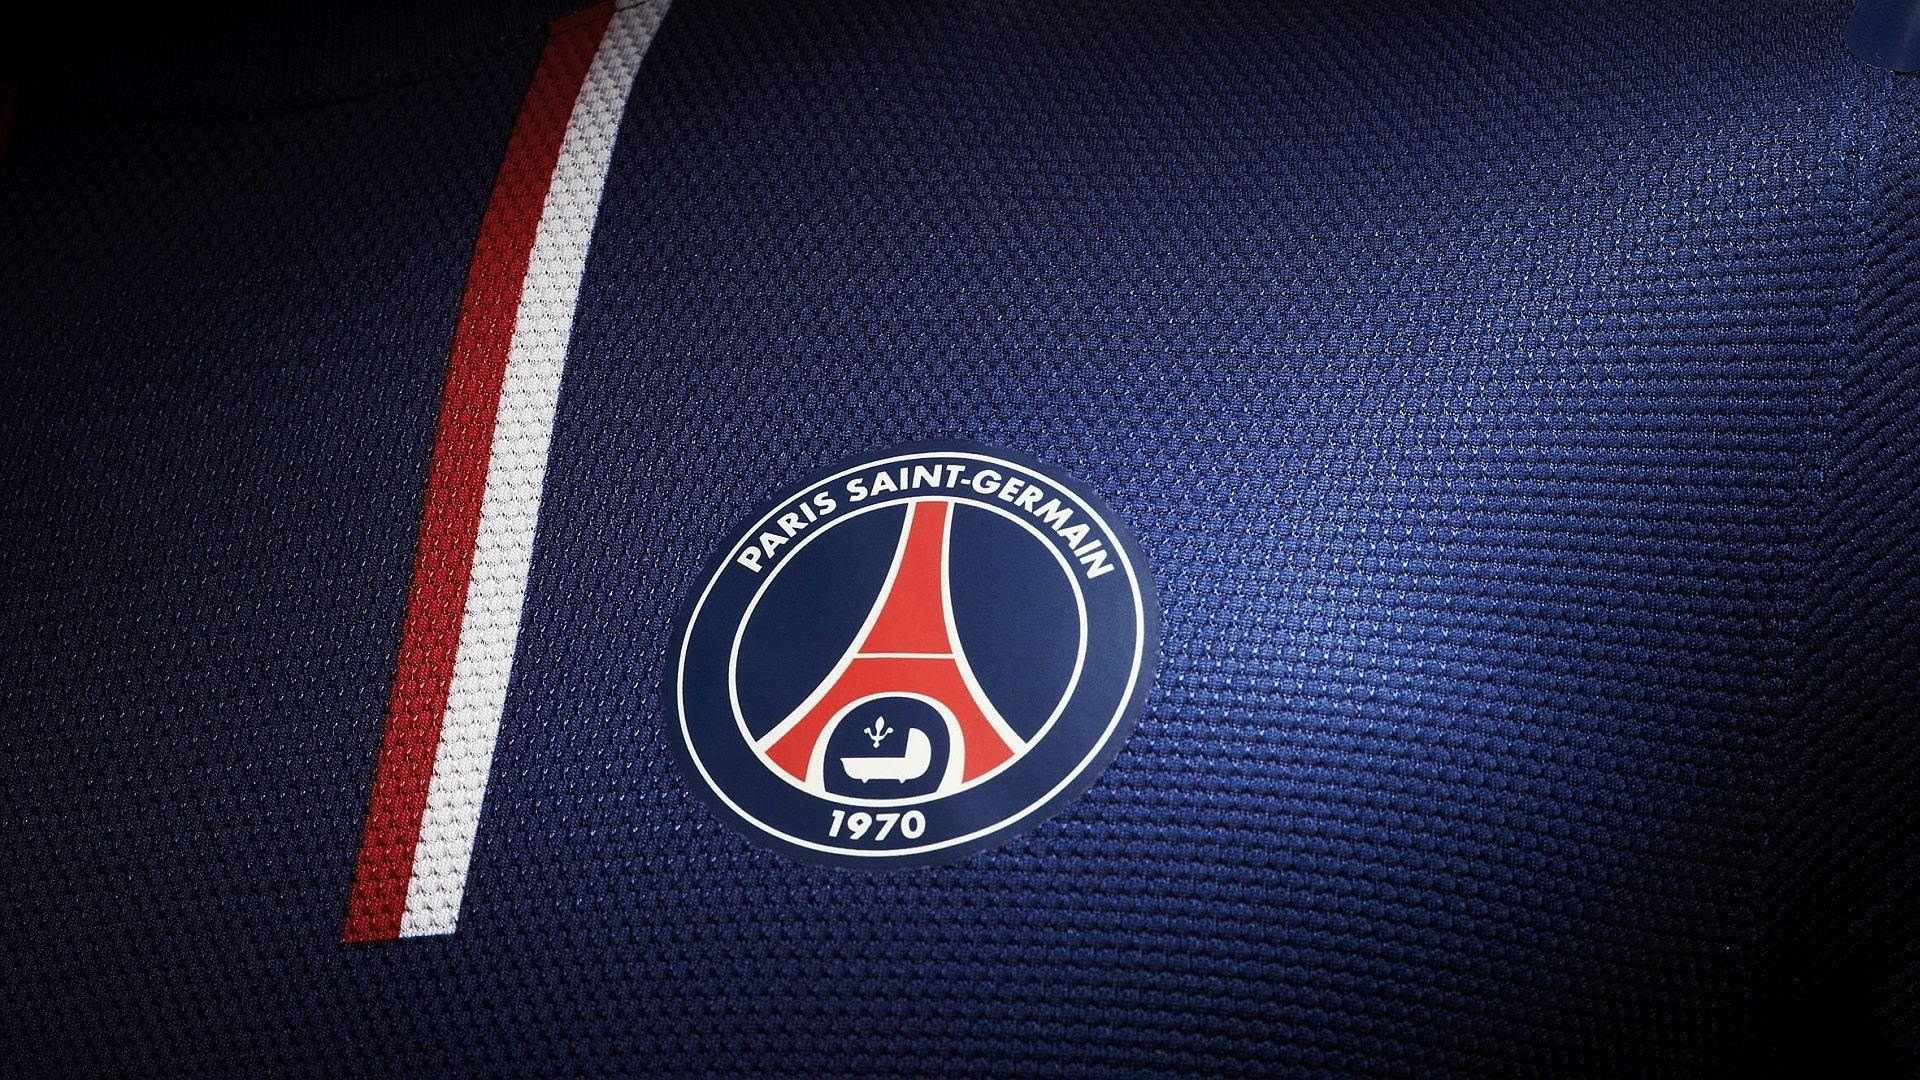 Paris Saint Germain Psg Wallpapers Wallpaper Cave